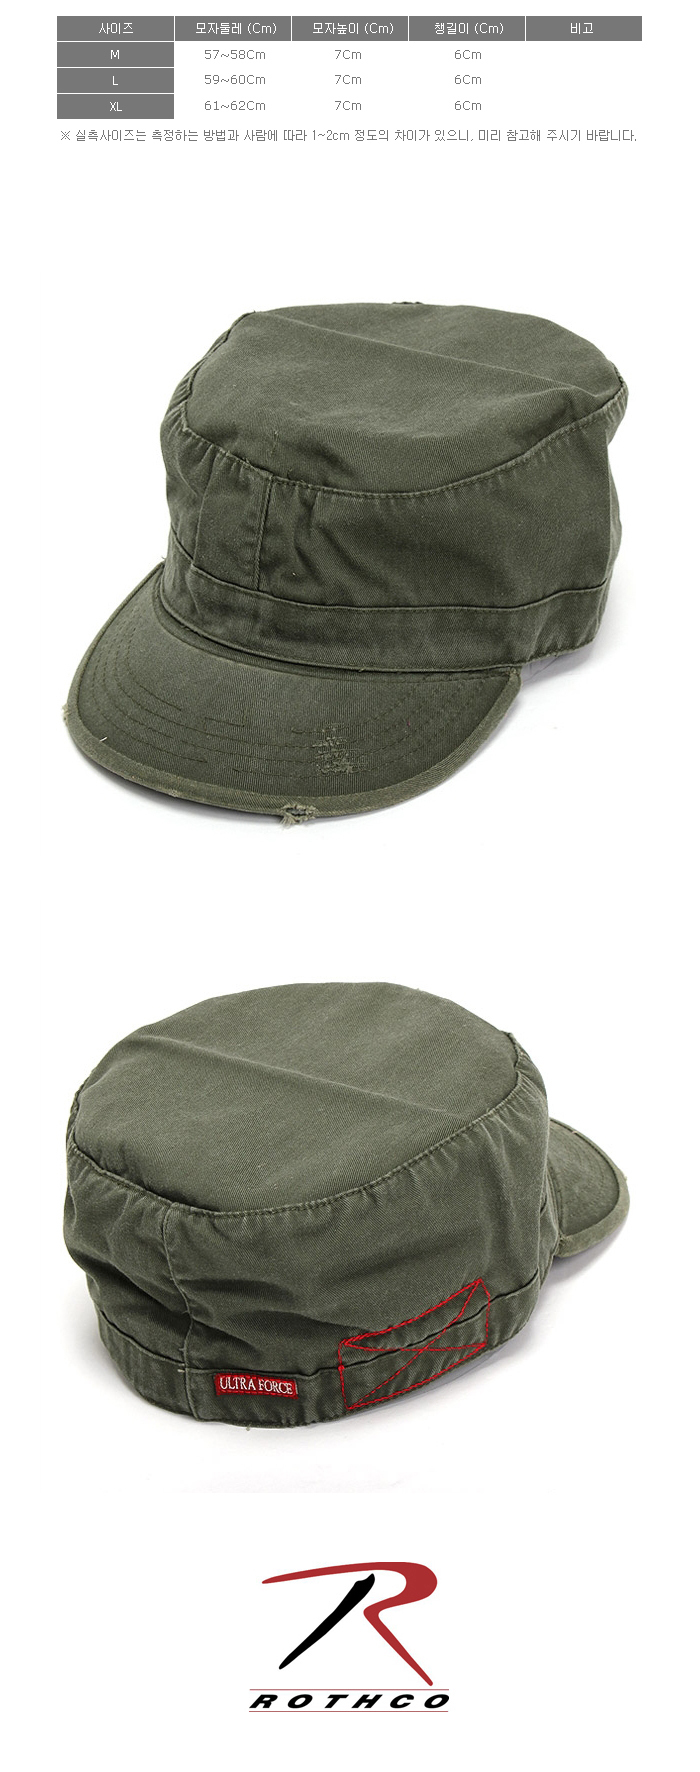 VINTAGE SOLID OLIVE FATIGUE CAP